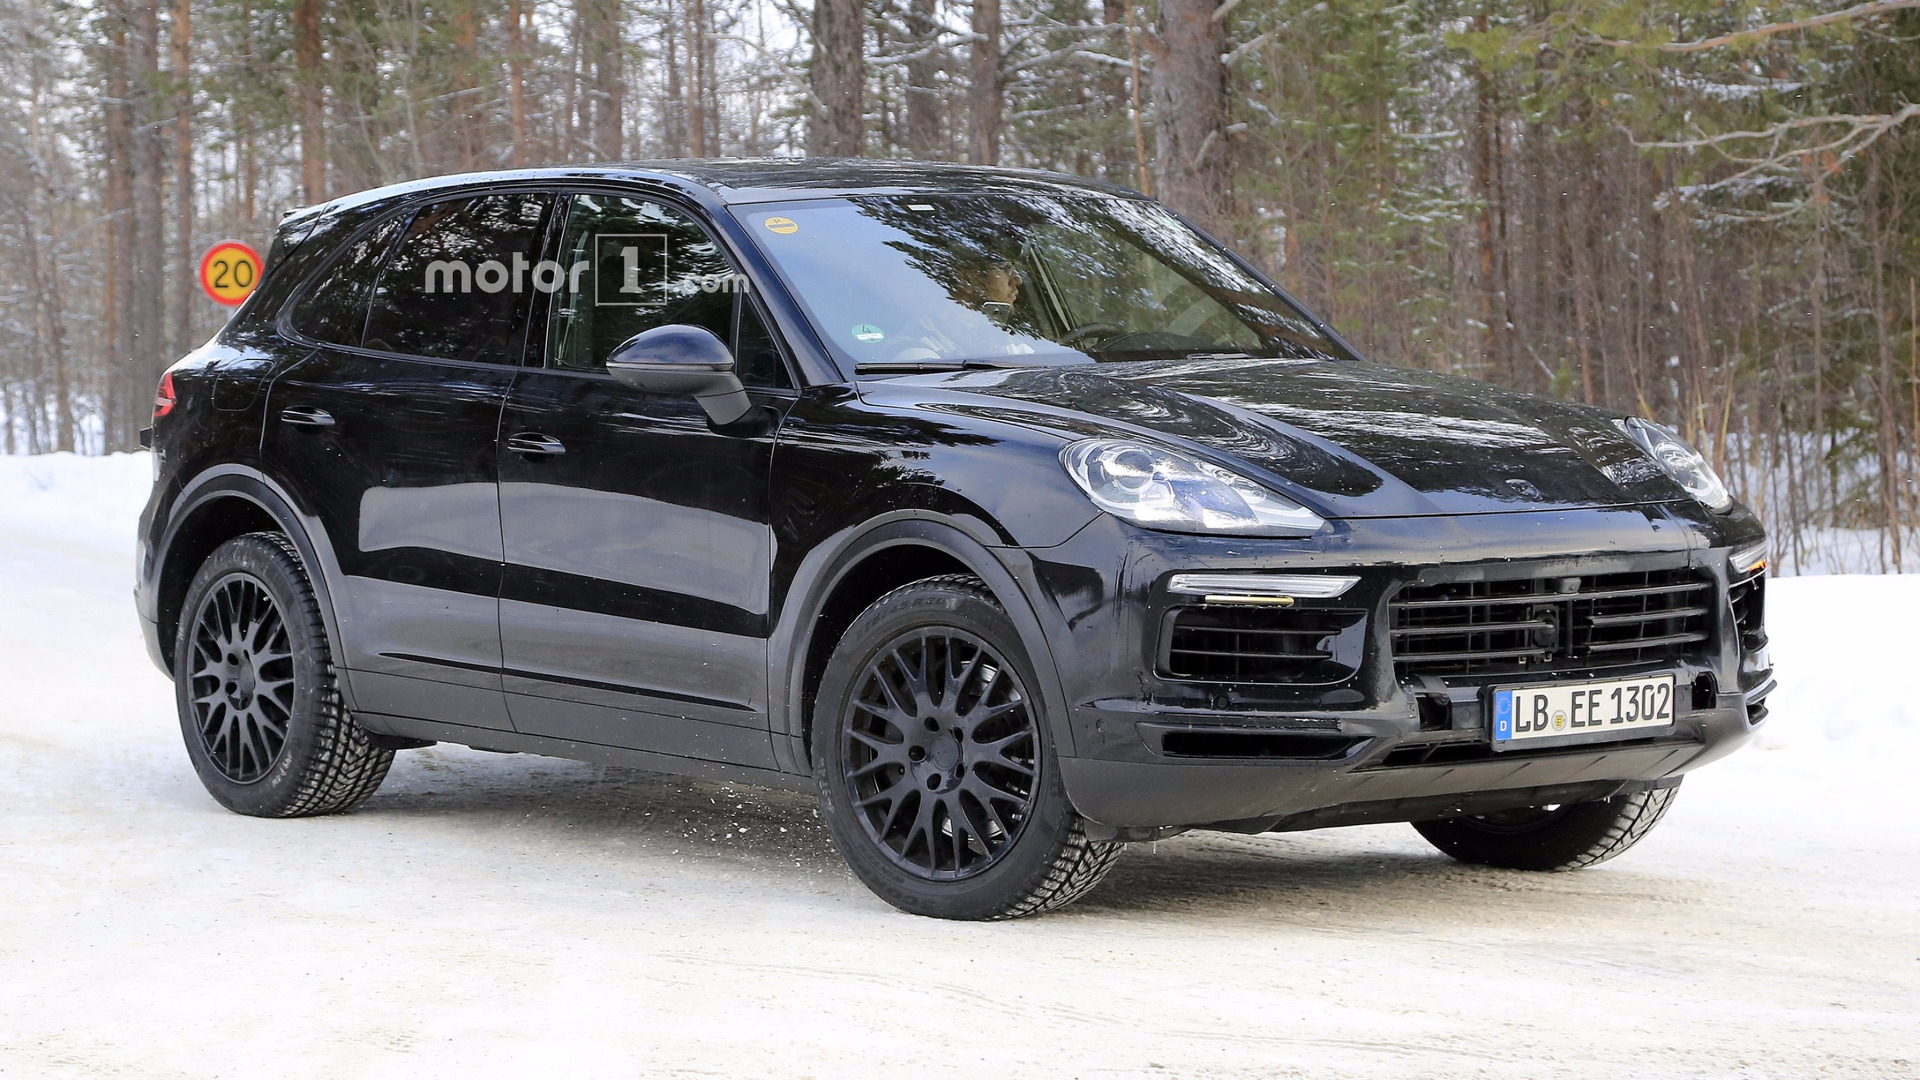 27 Best 2020 Porsche Cayenne Turbo S Pictures